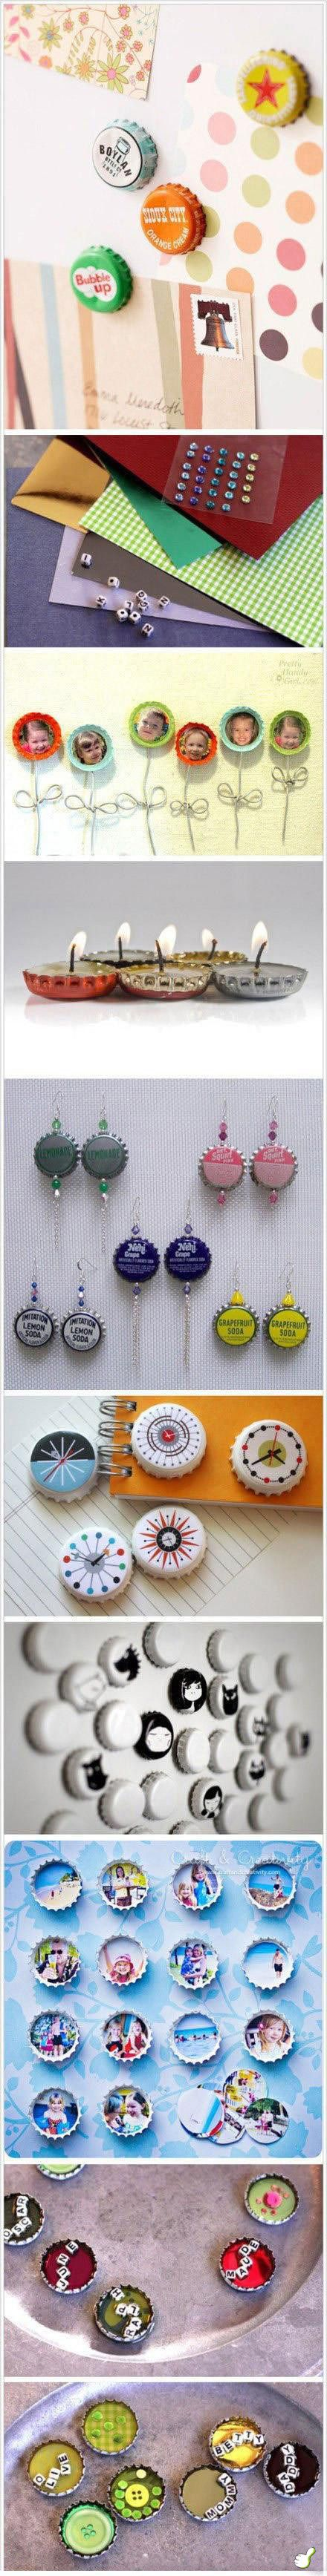 Fun ideas bottle cap crafts and things to on pinterest for How to make things with bottle caps